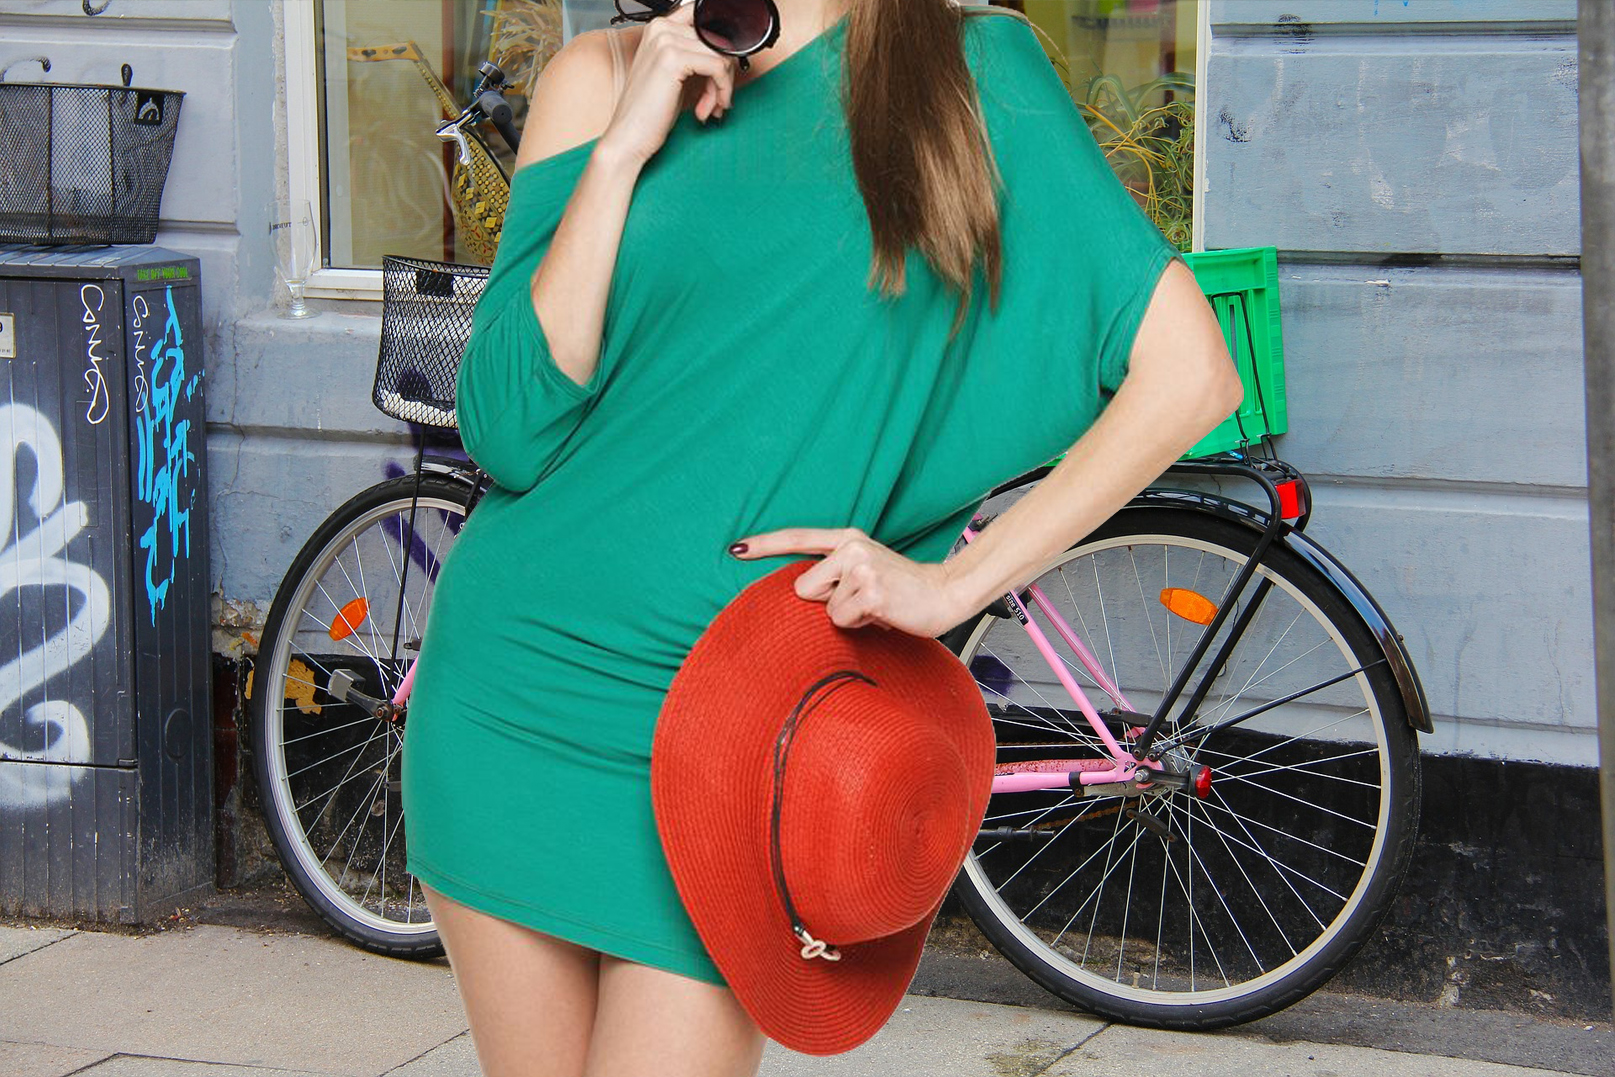 woman in green dress with red hat